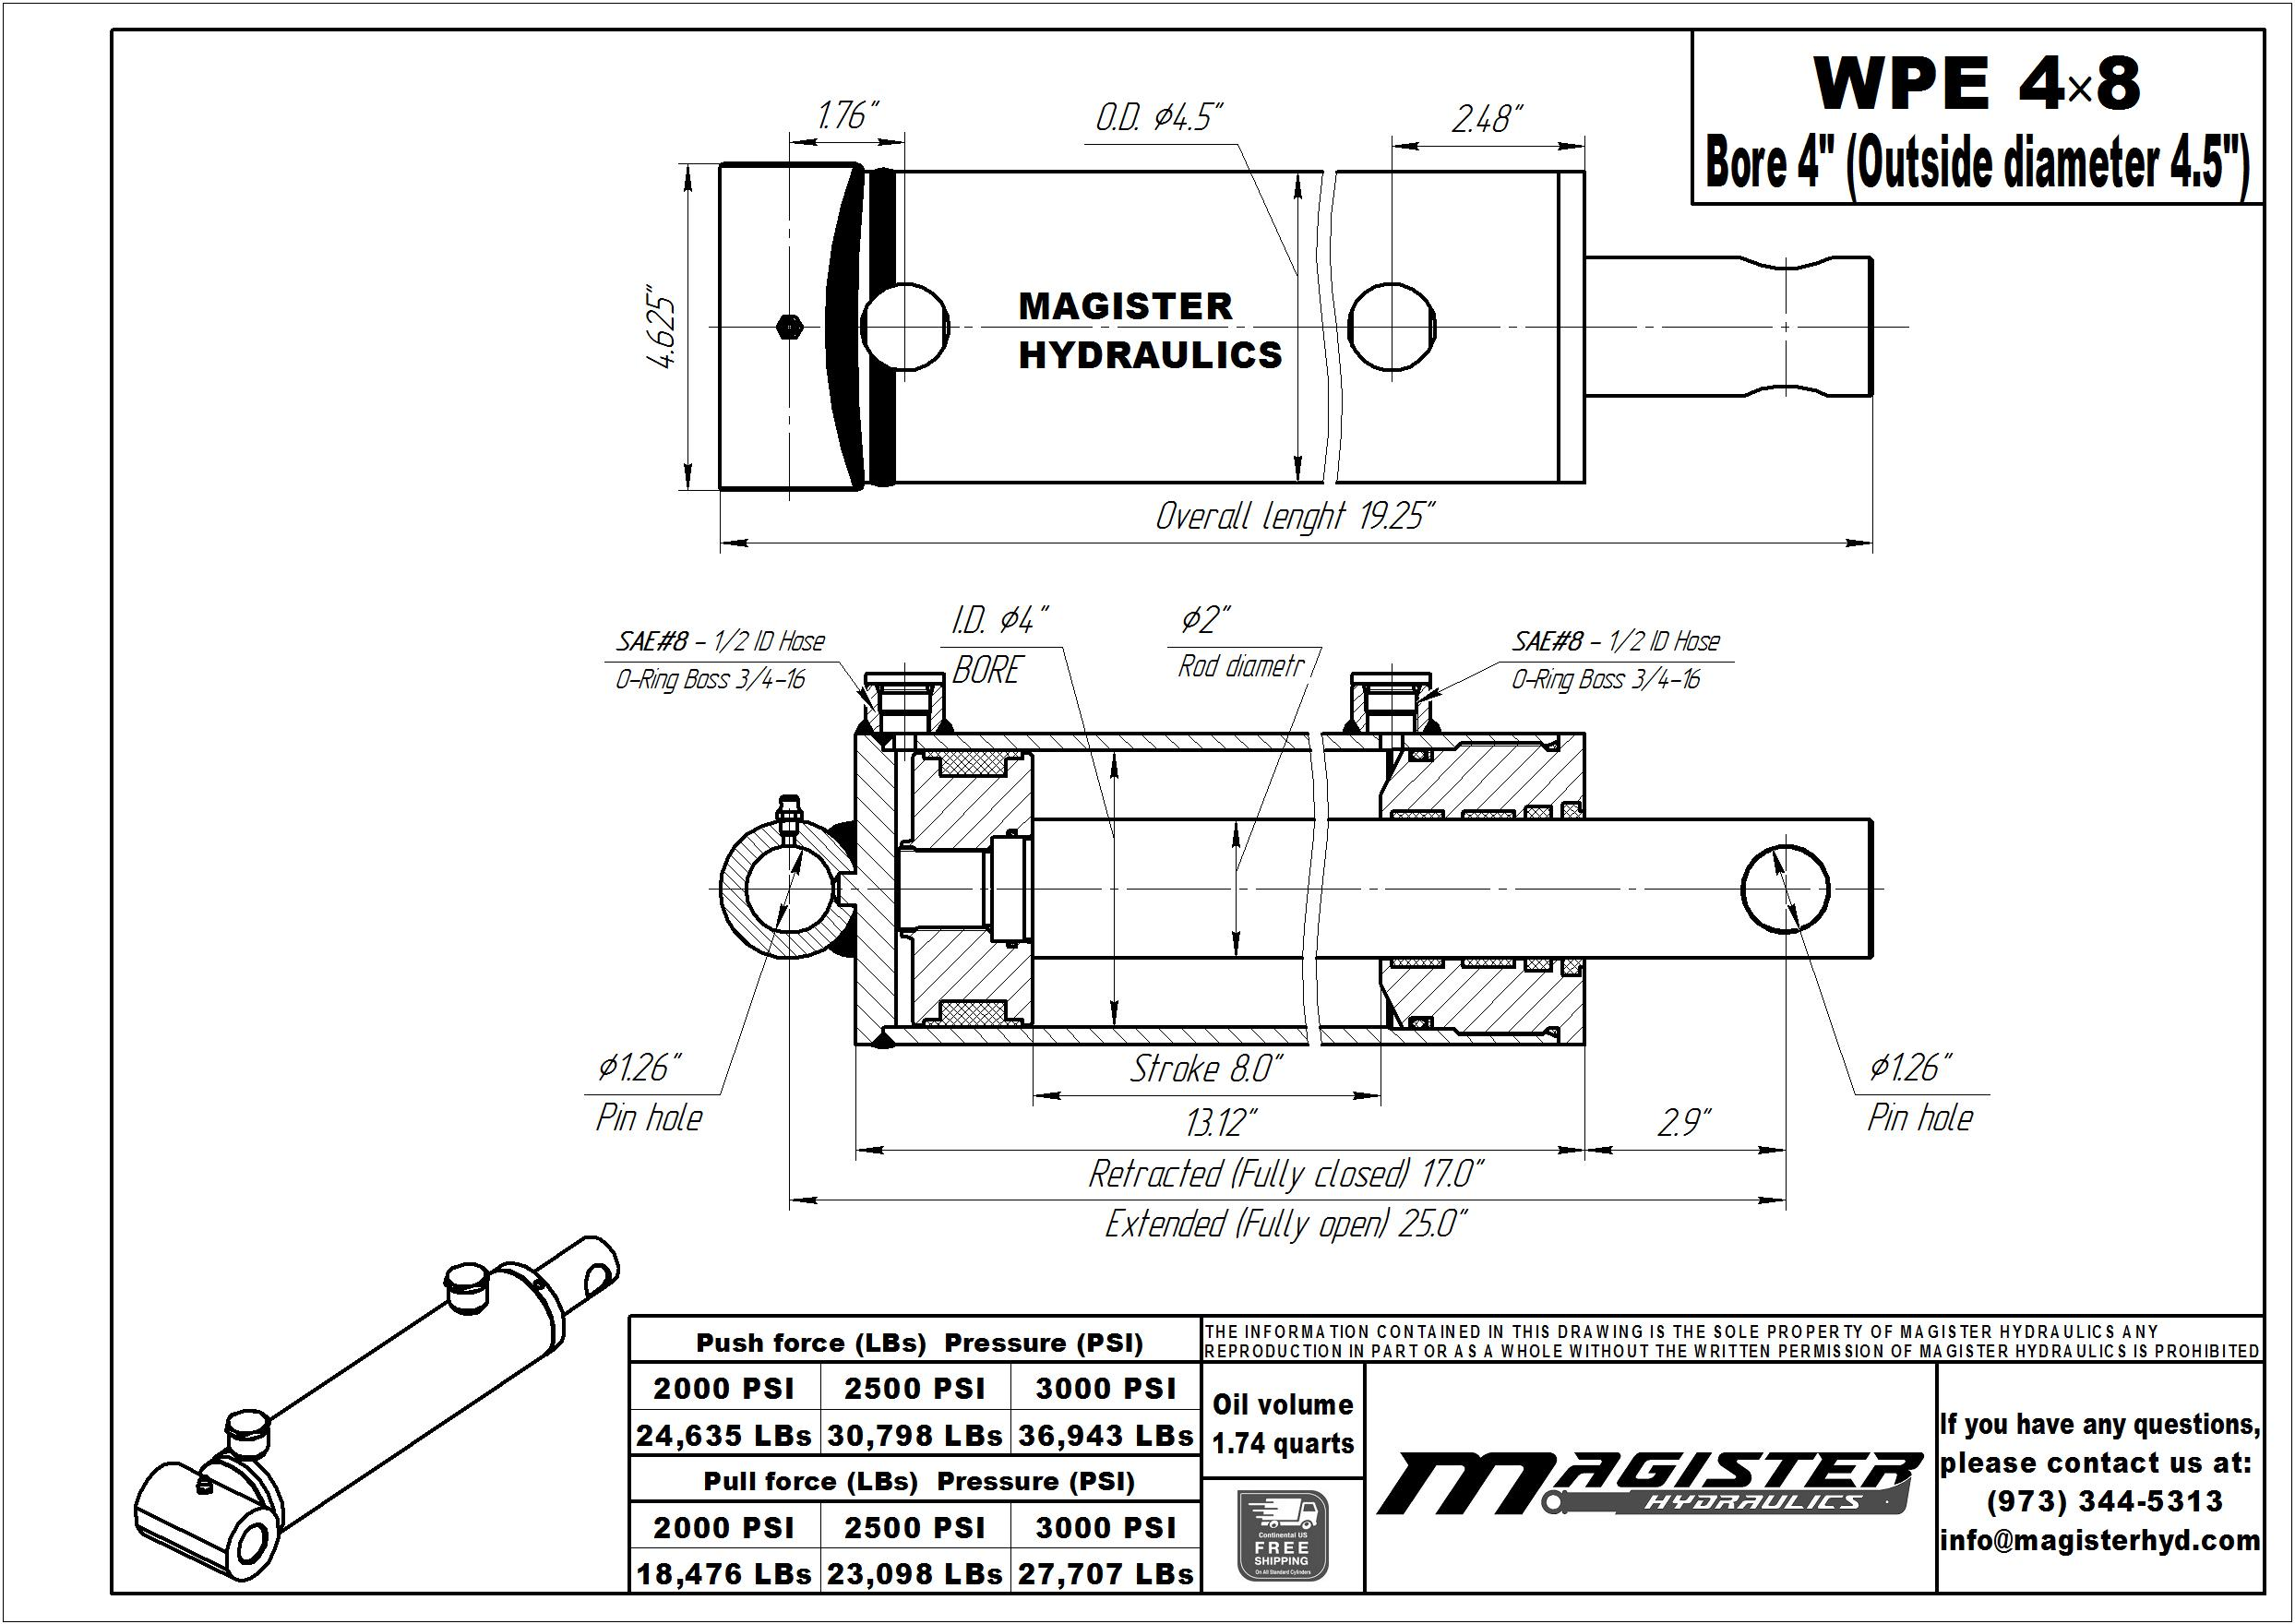 4 bore x 8 stroke hydraulic cylinder, welded pin eye double acting cylinder | Magister Hydraulics